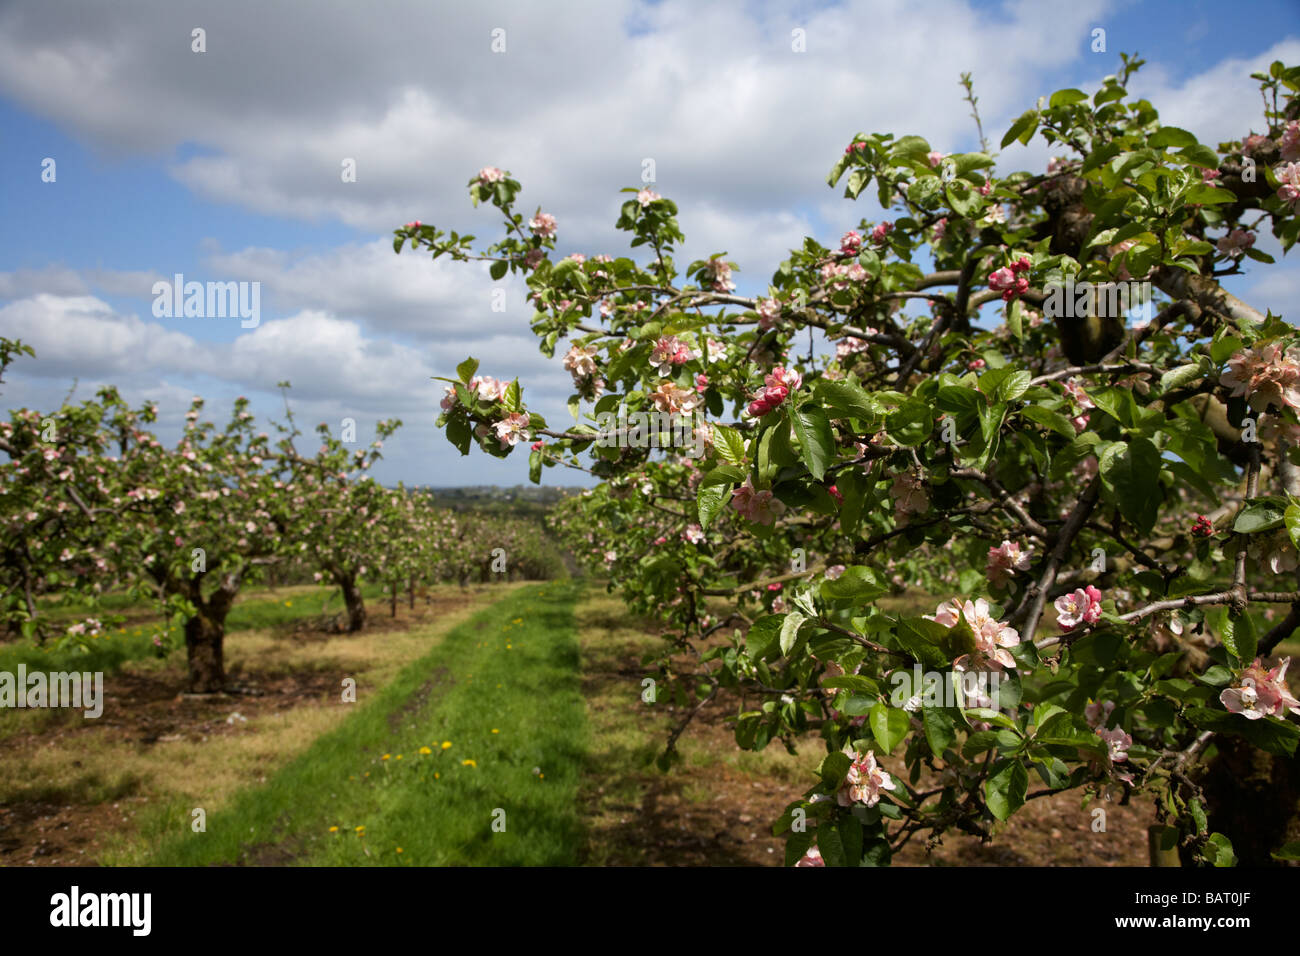 apple blossoms in bramley apple orchard in county armagh northern ireland uk - Stock Image